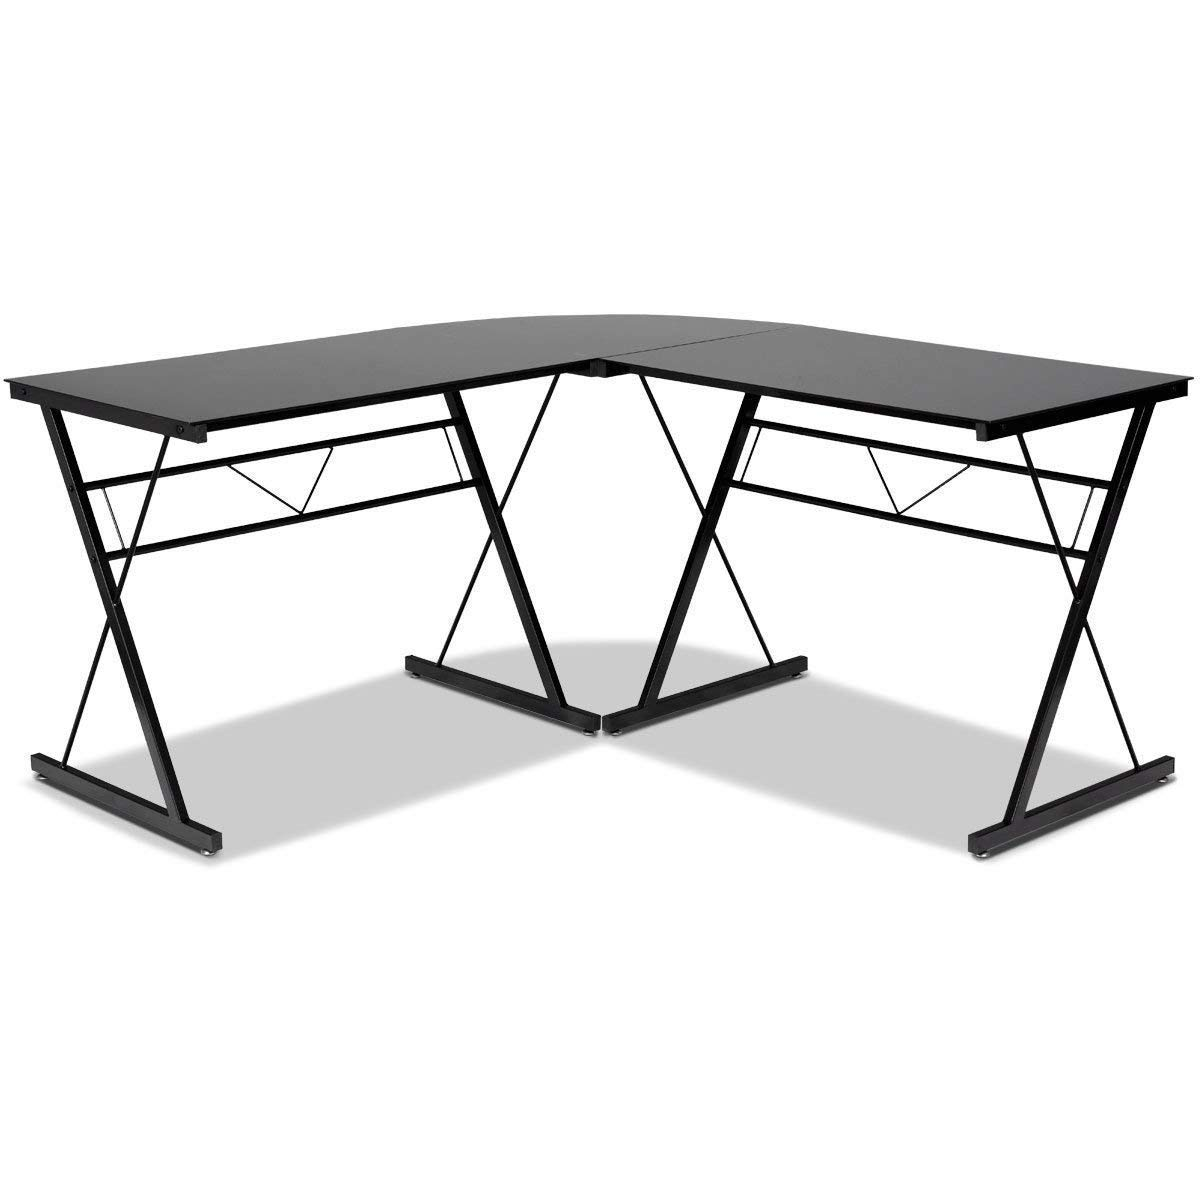 TANGKULA L- Shaped Corner Desk Corner Computer Desk Modern Simple Style 3-Piece Metal Frame Study Laptop Desk Writing Gaming Table Computer Workstation with Glass Top Home Office Studio